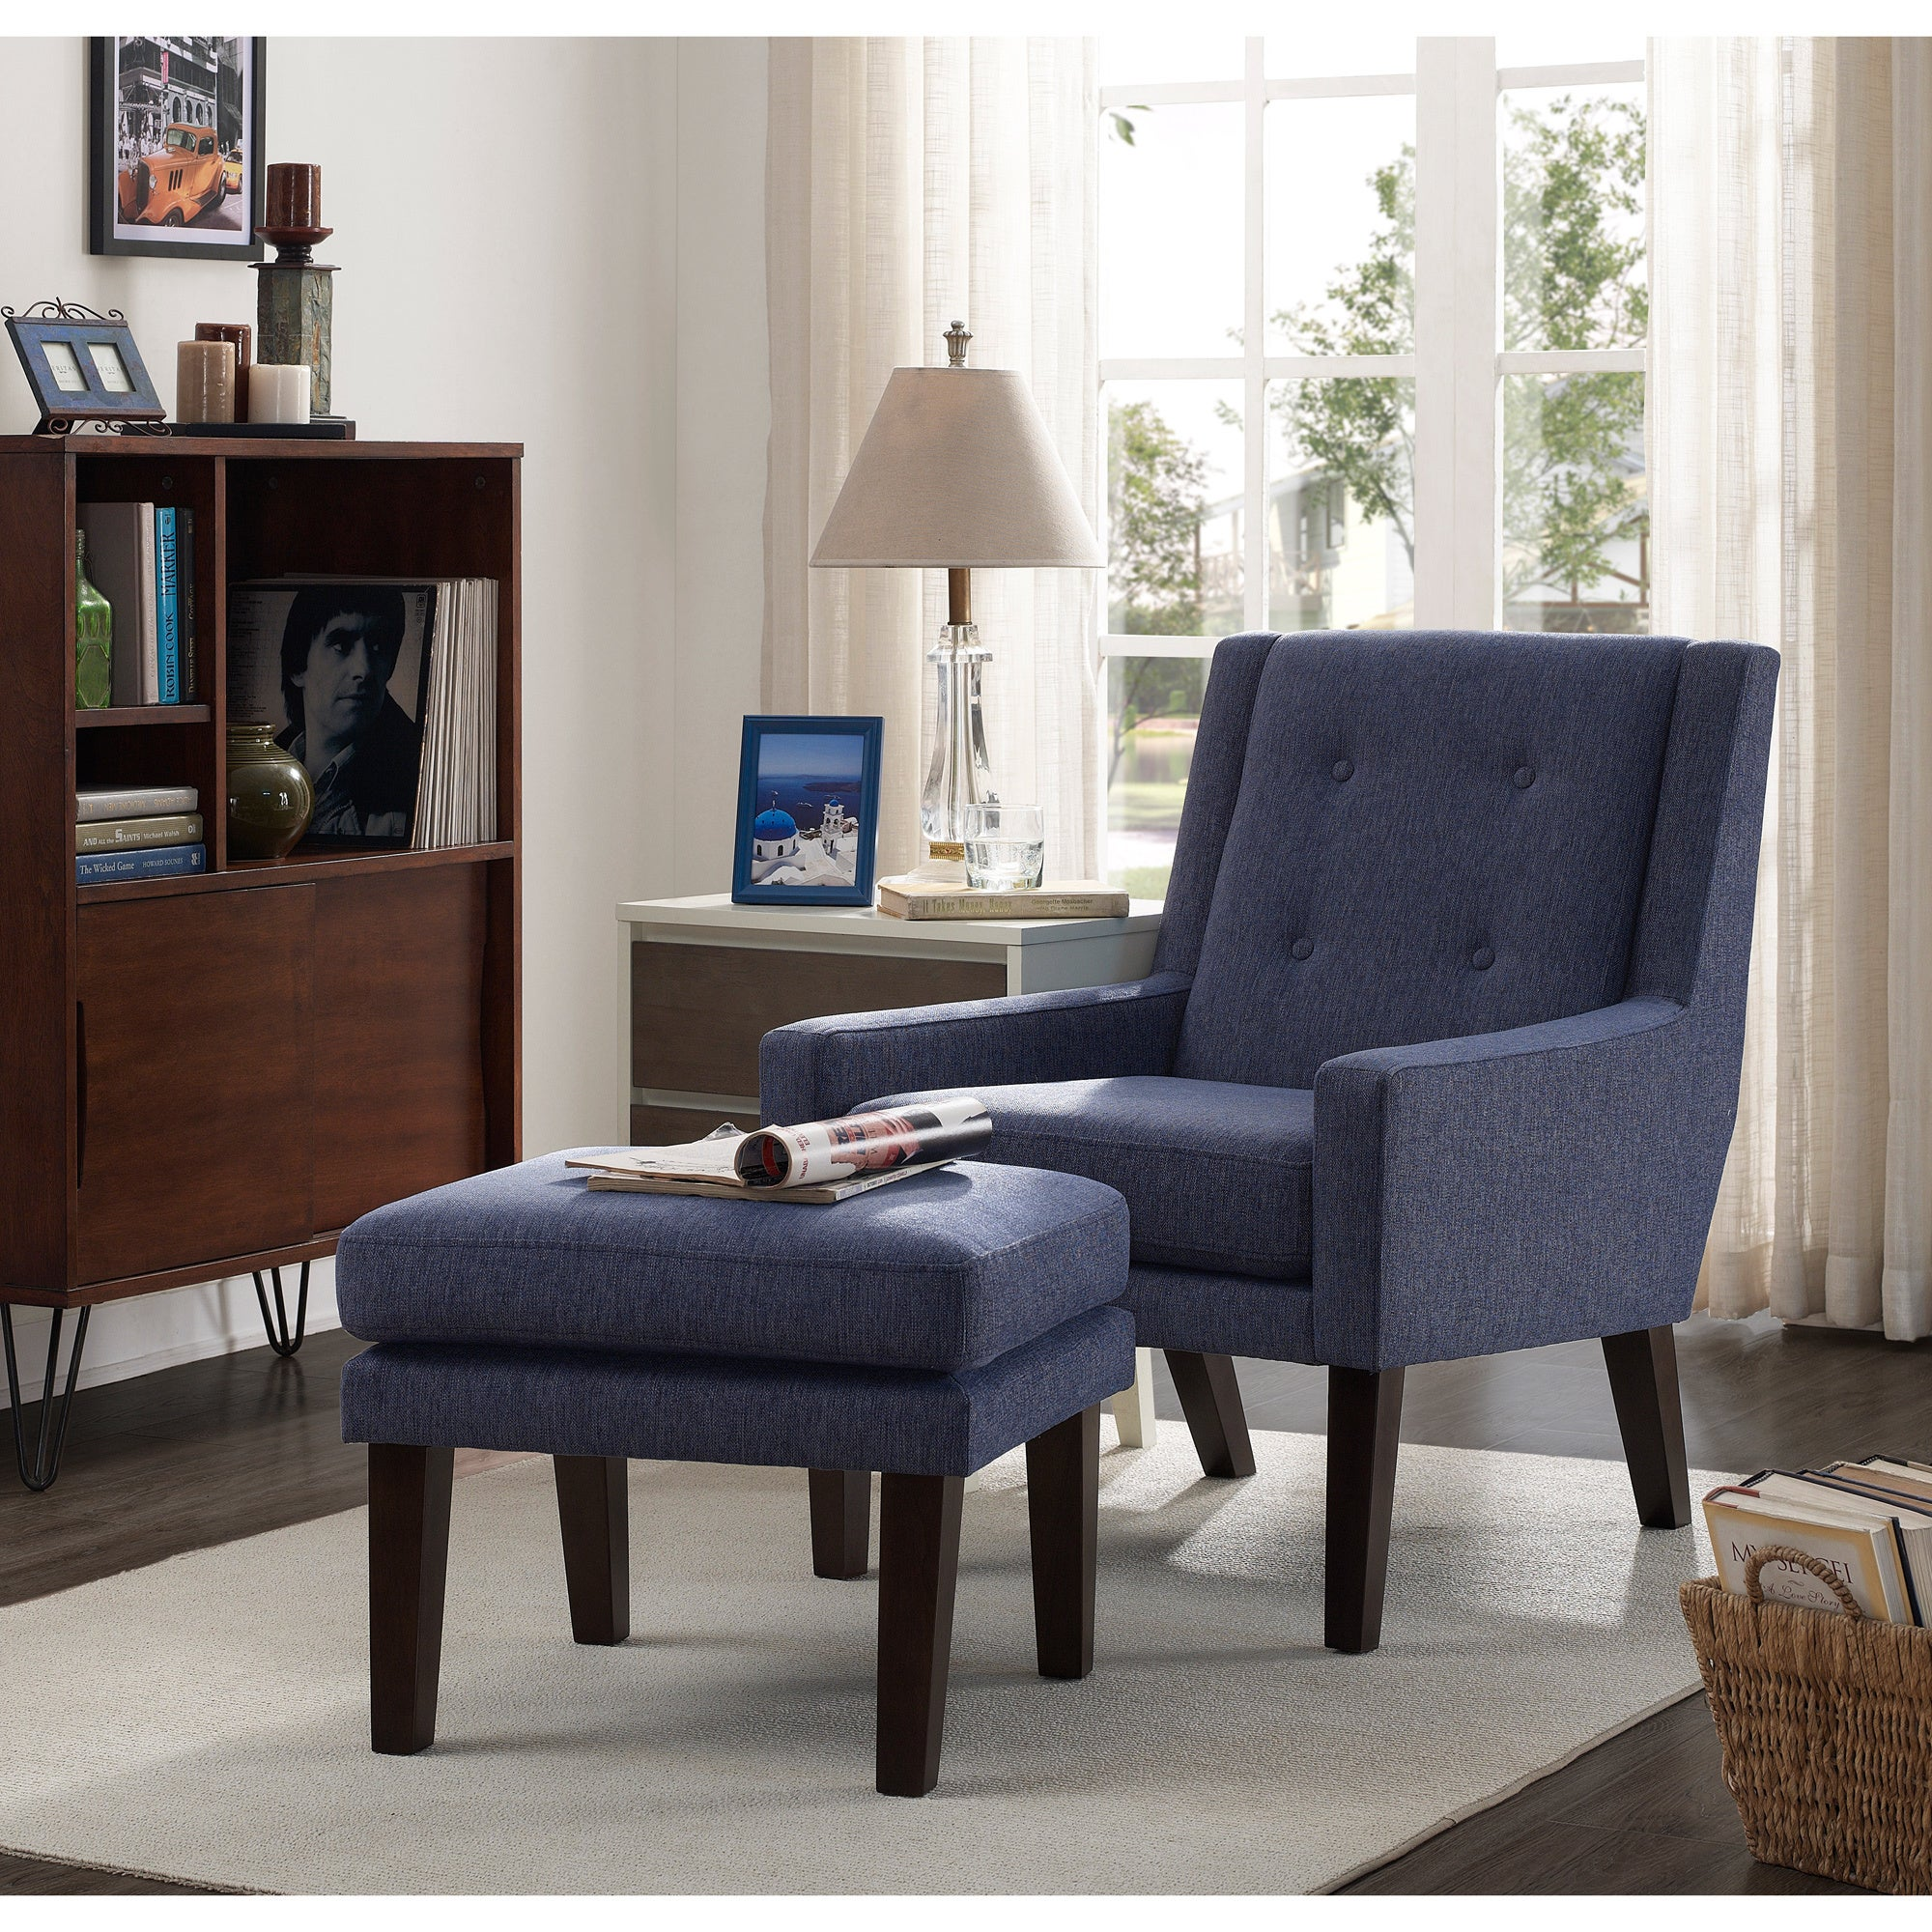 for purple popular room subscribed c living has stylish materials colored overstock ottomans from tufted vibrantly lavish and with chair chairs l credited pattern furniture accent ireachmobi david design gray